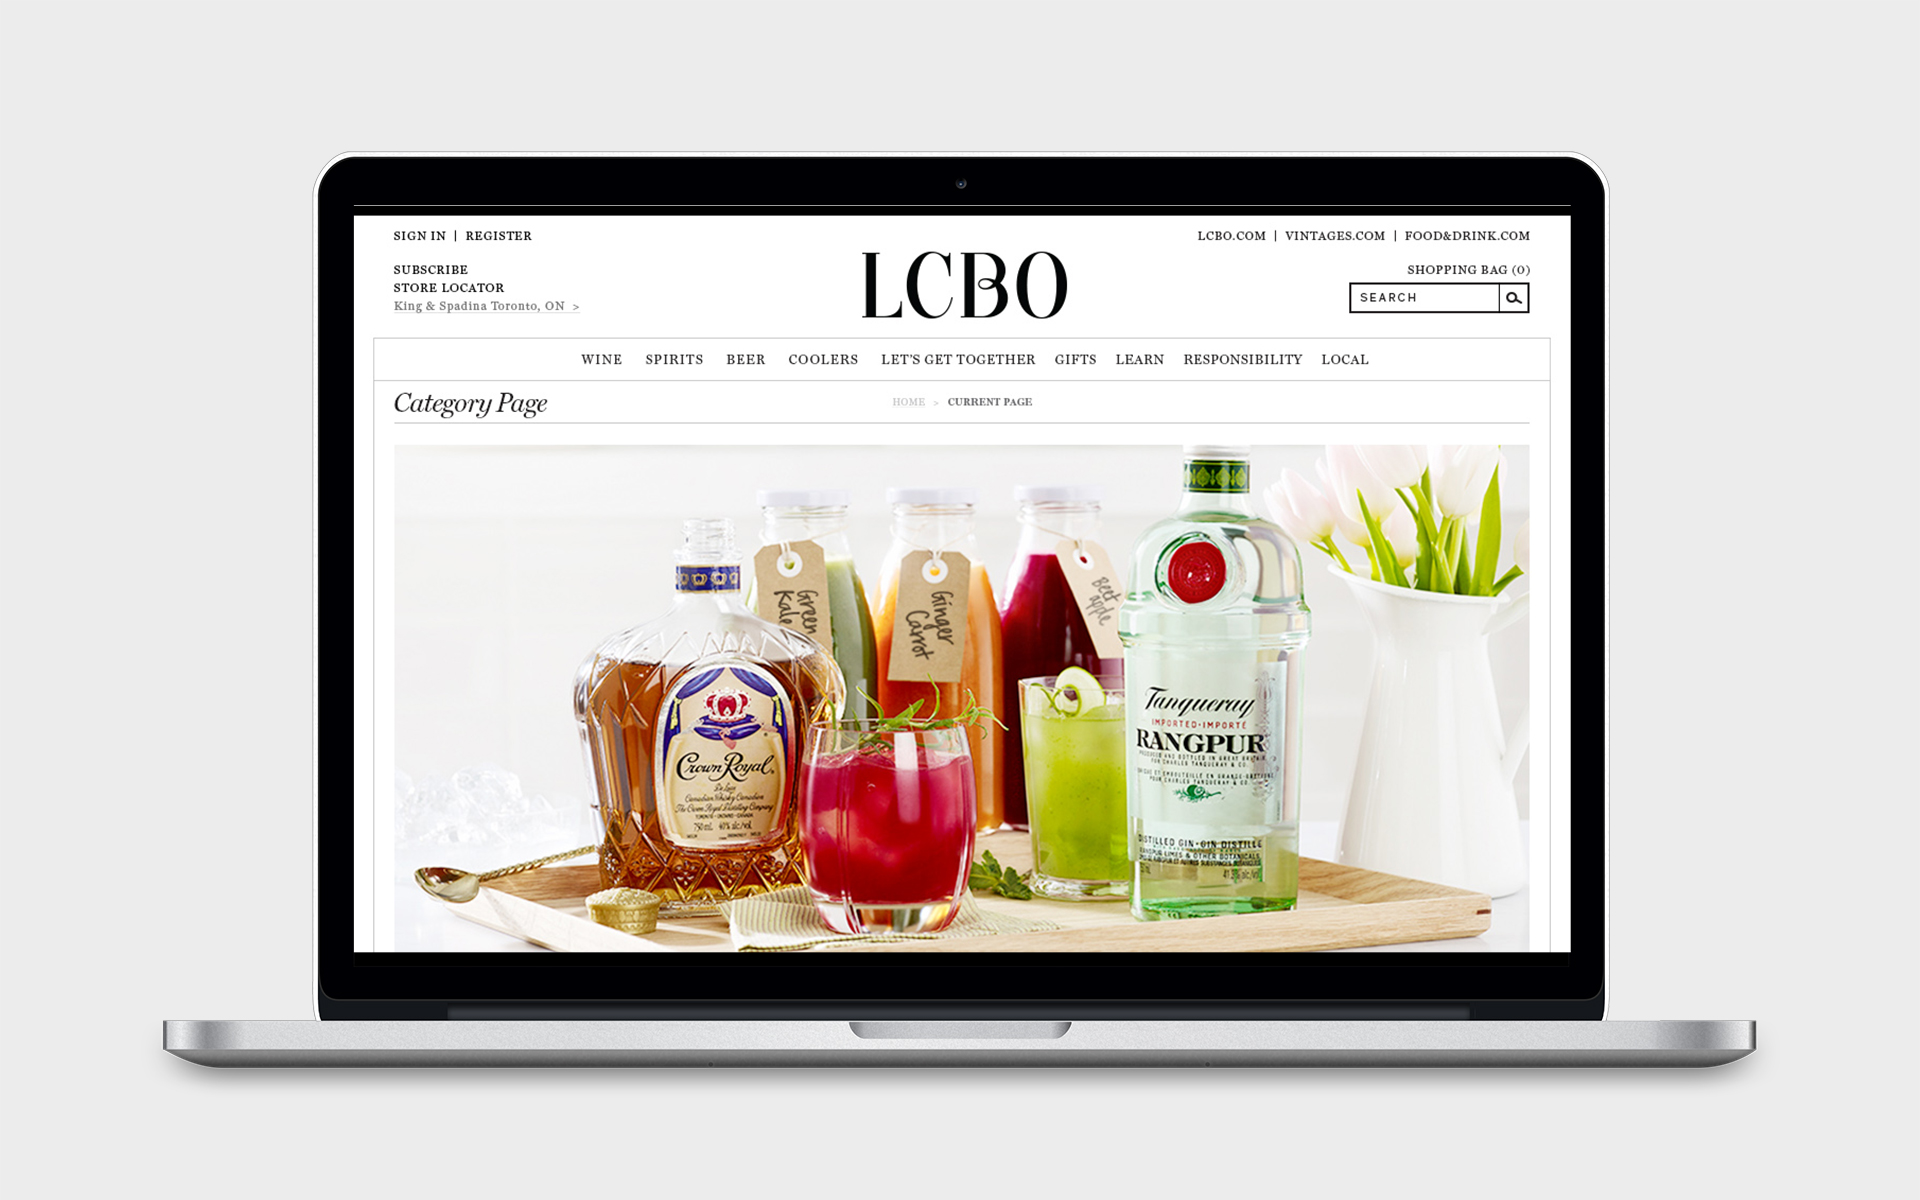 Paige Smith Design LCBO Refresh Your Drink Campaign